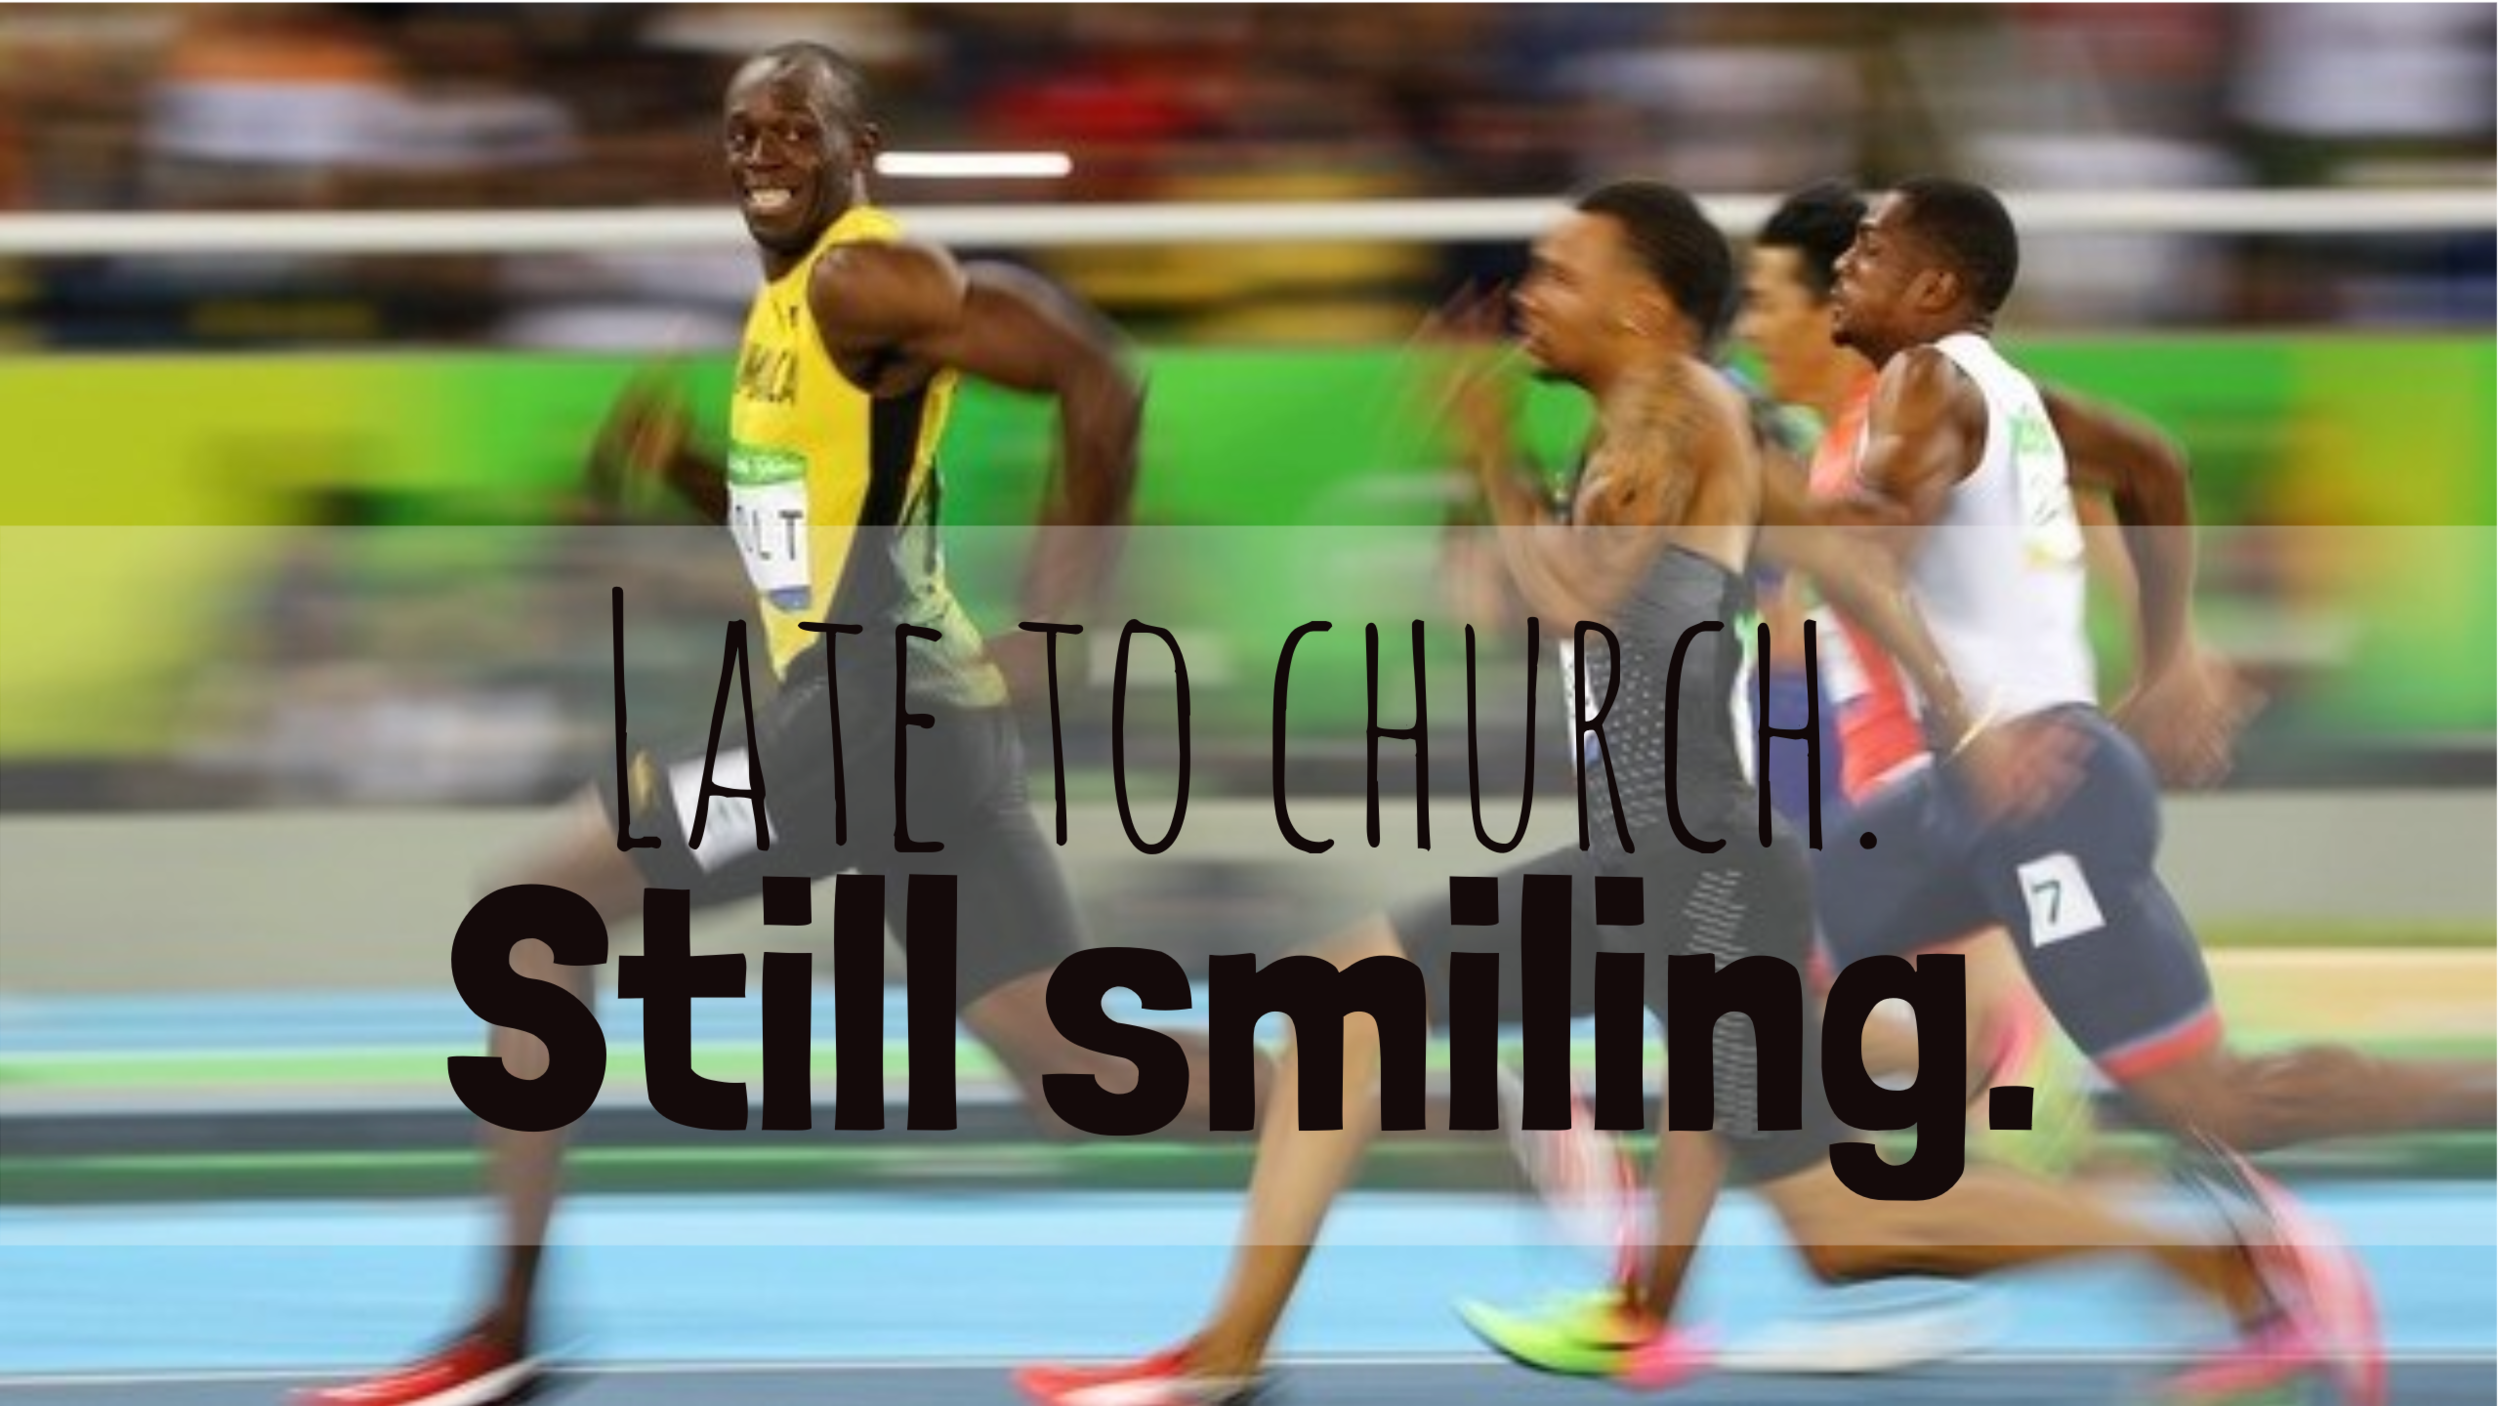 Late to Church.png